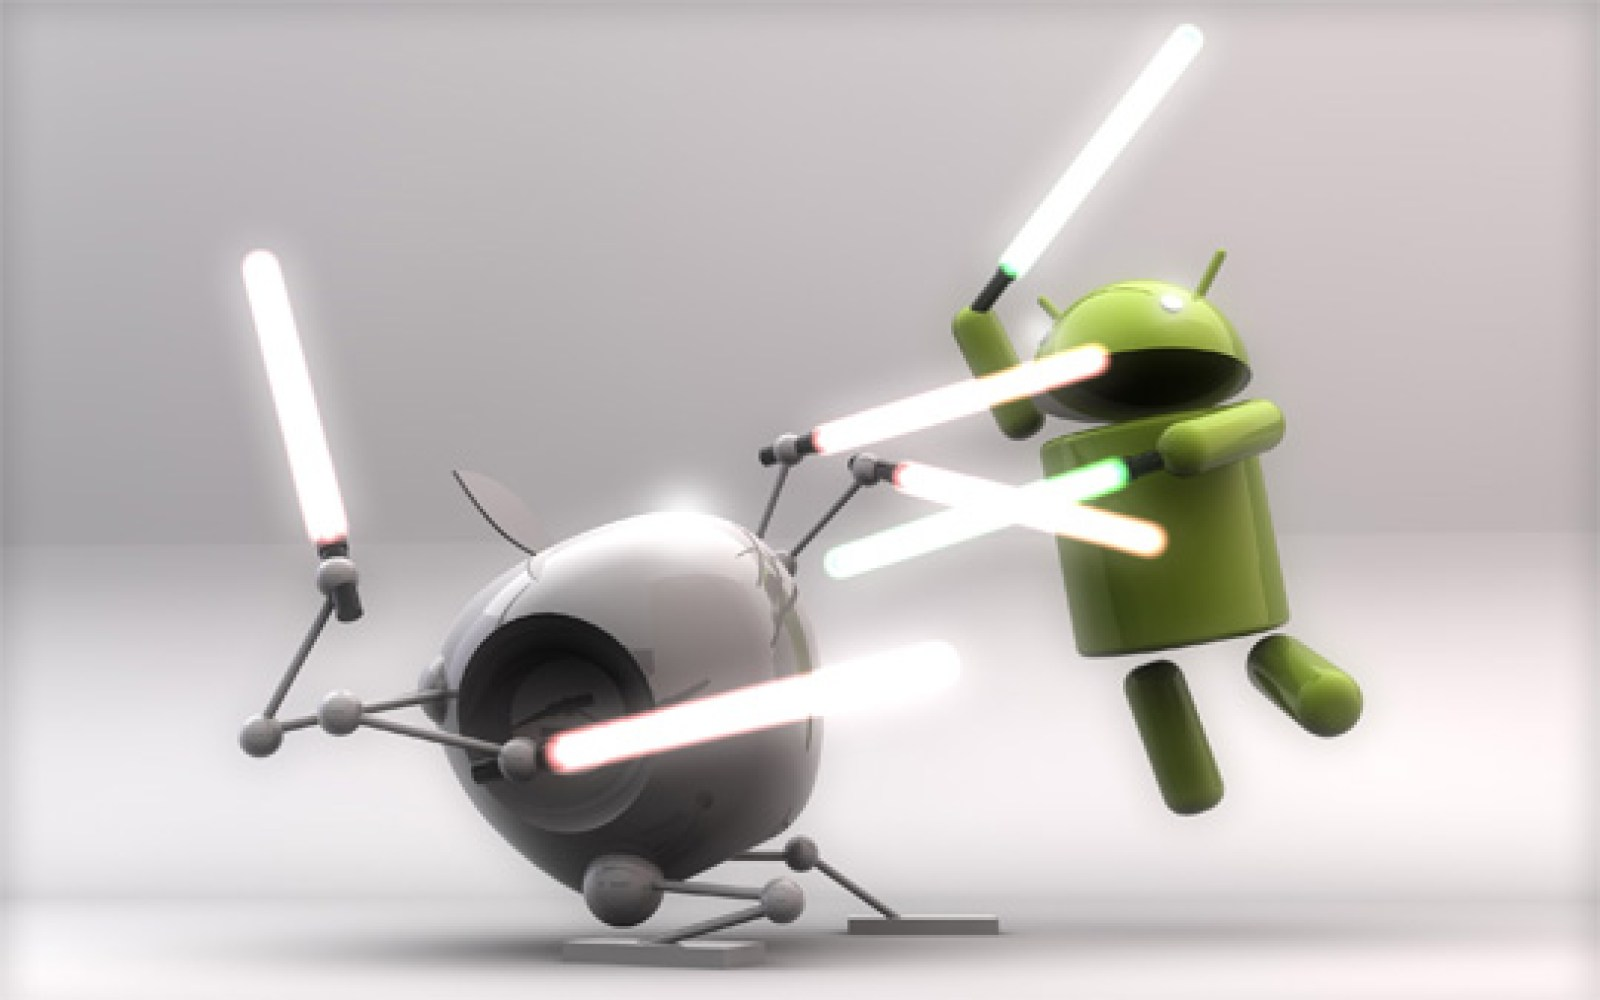 iPhone, iPad leads in business, profitability, Android leads in smartphone marketshare